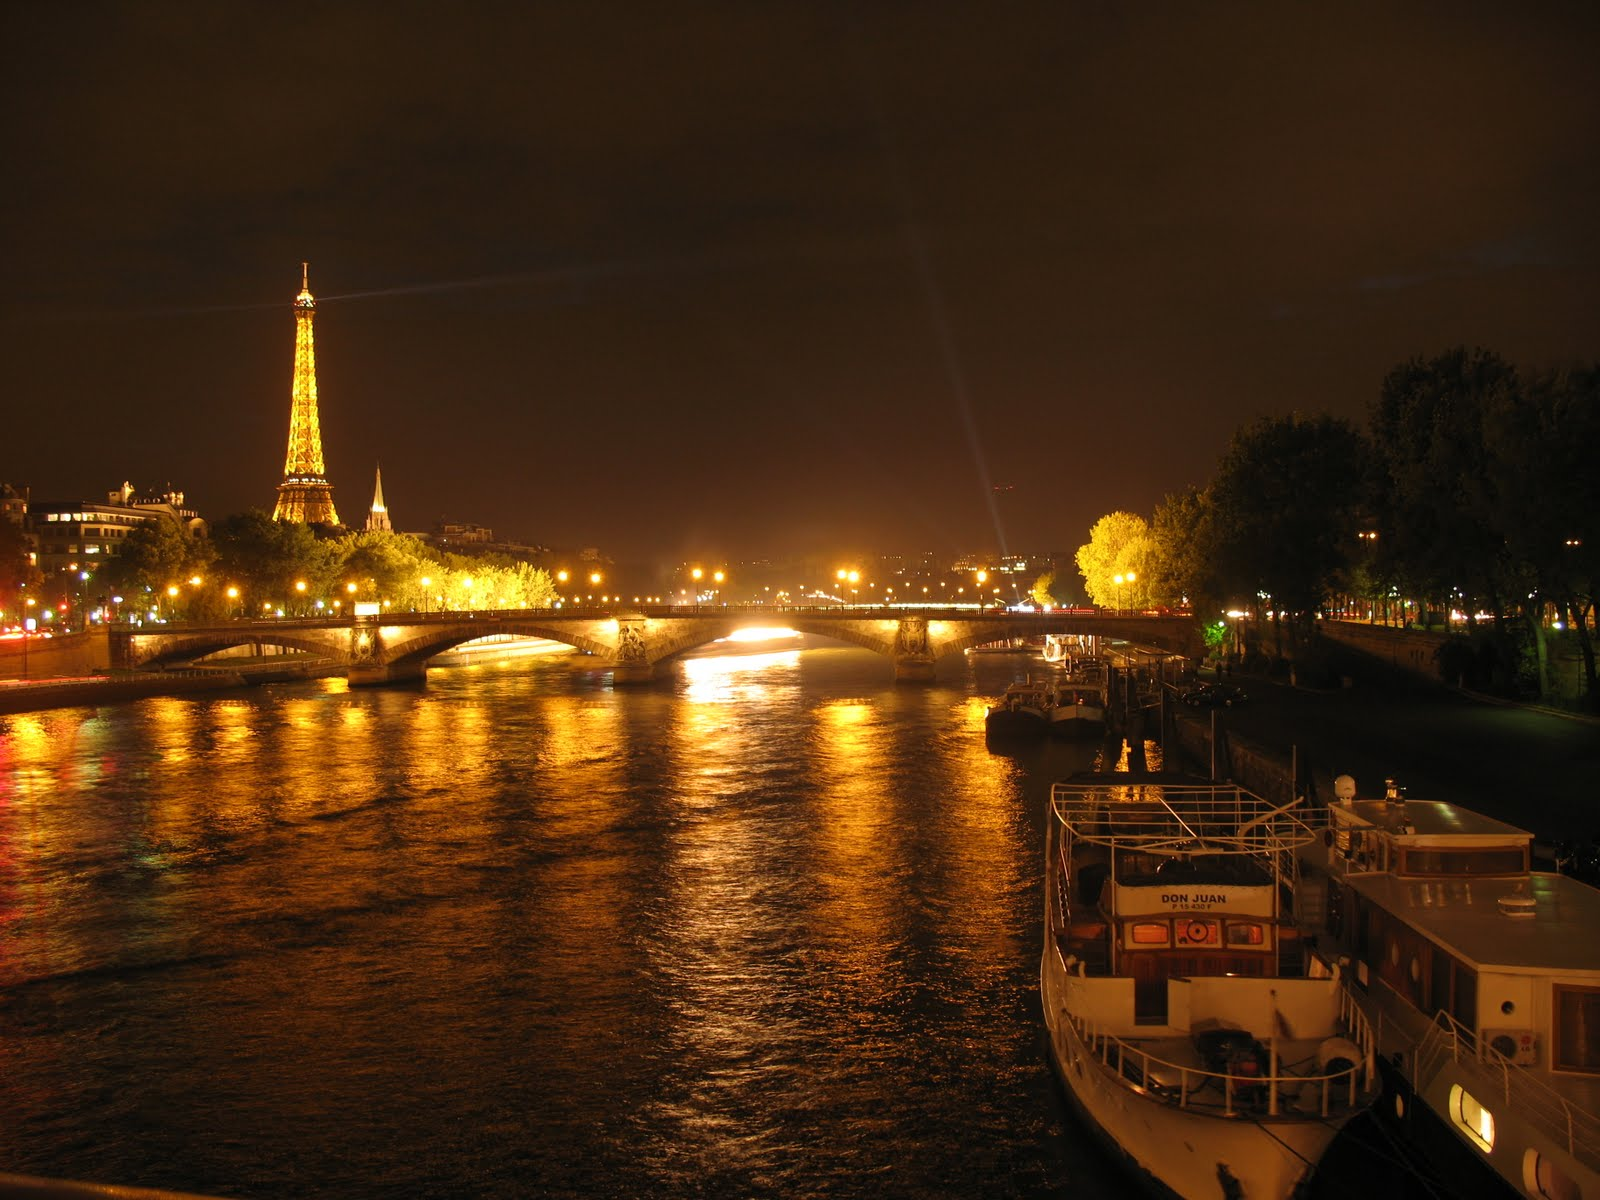 Pin night in paris the wastetime post on pinterest for Paris night time